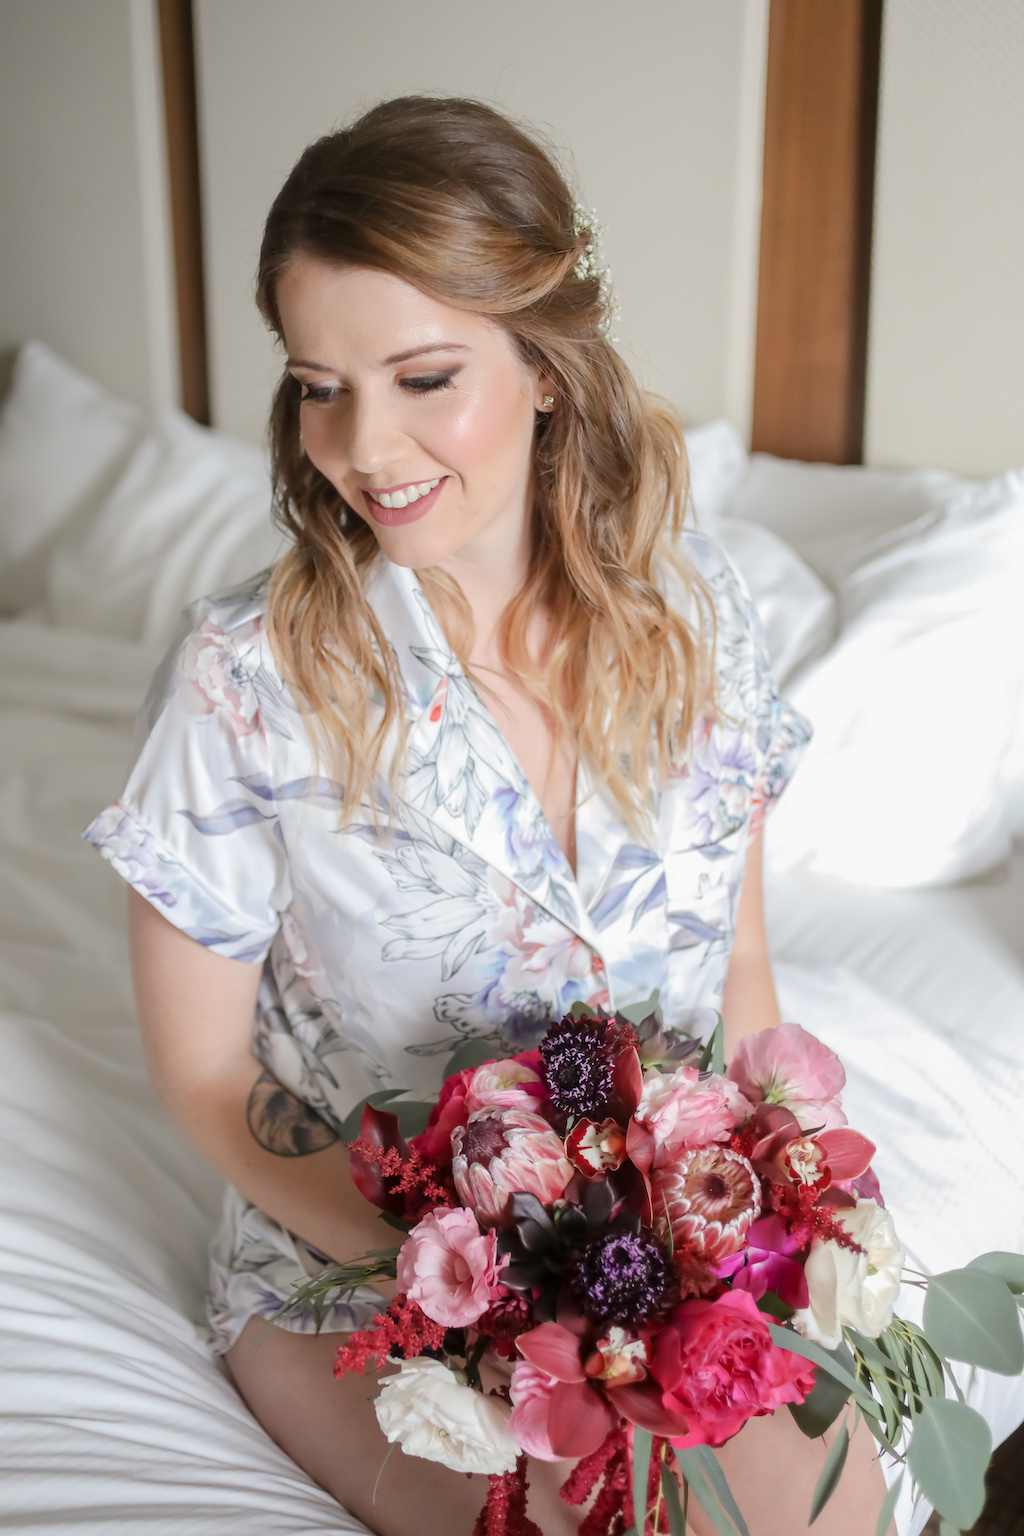 Florida Bride Getting Ready Wedding Portrait in Silk Floral and Light Blue Robe with Jewel Tone, Purple, Plum, Pink, White and Greenery Organic Floral Bouquet | Tampa Bay Wedding Photographer Lifelong Photography Studios | Hair and Makeup Artist Femme Akoi